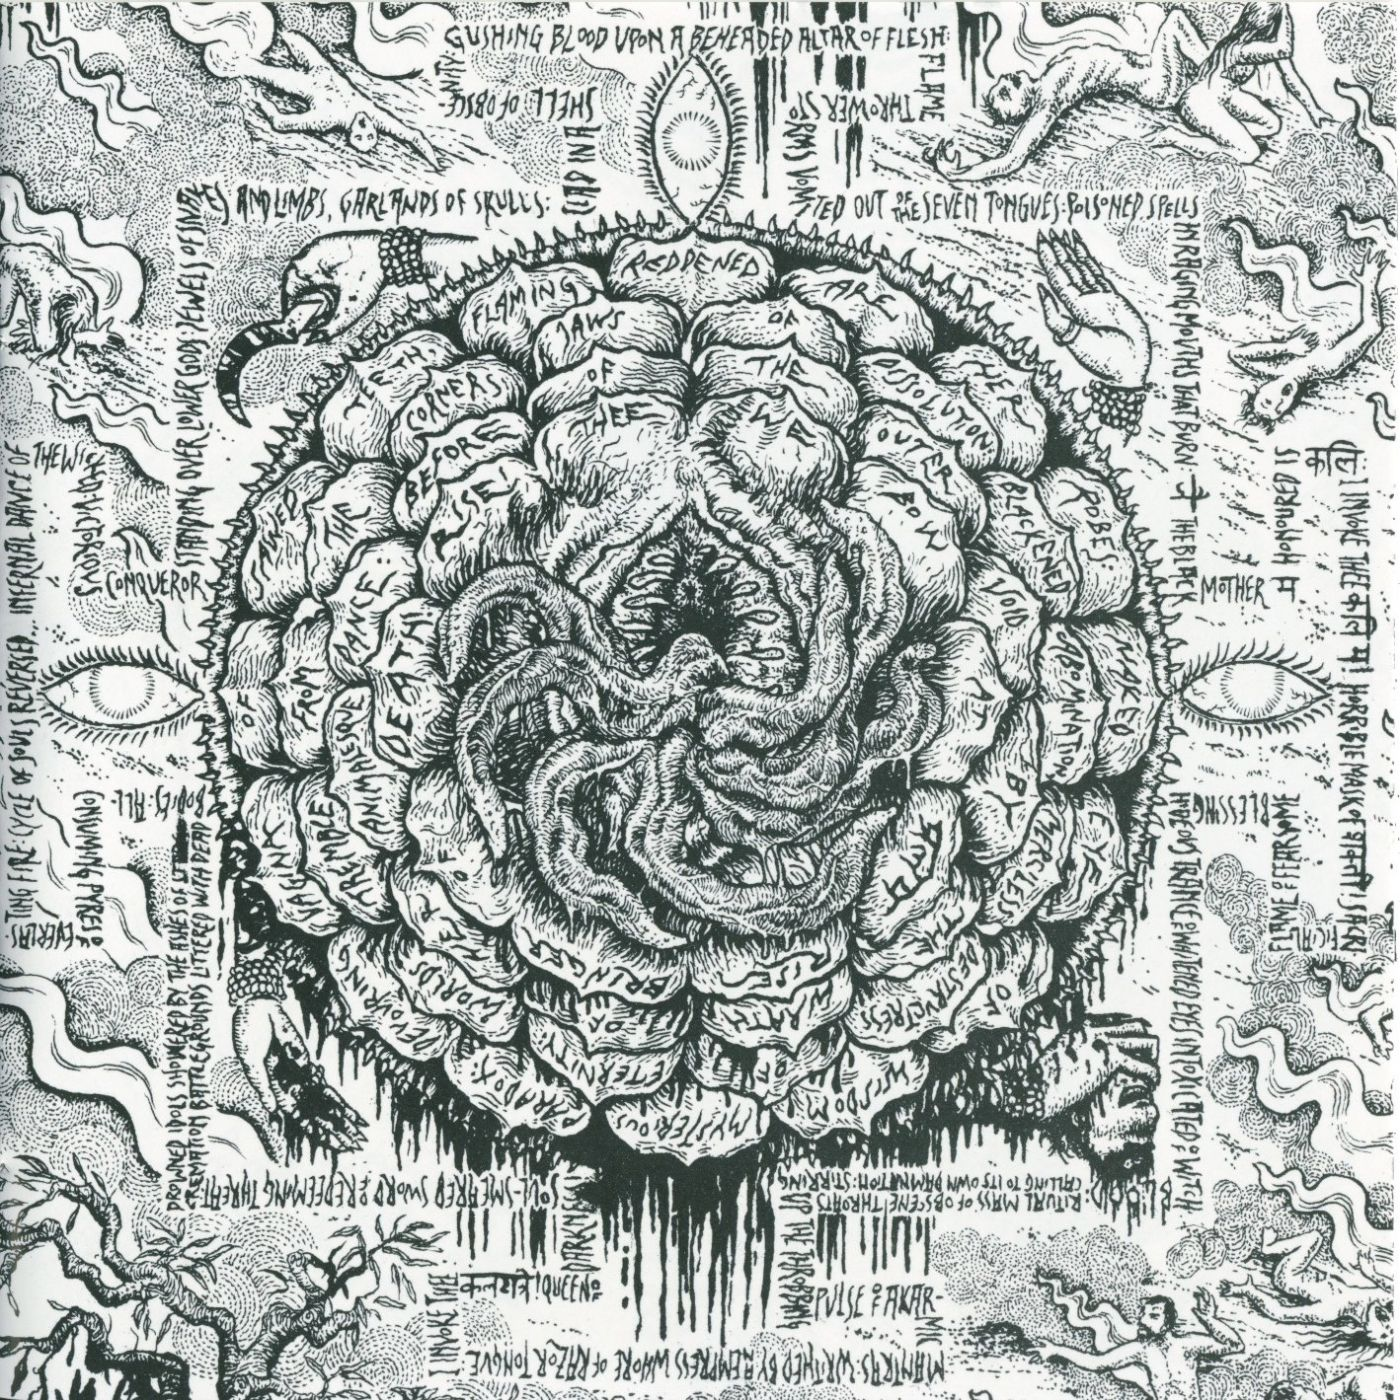 Review for Teitanblood - Seven Chalices